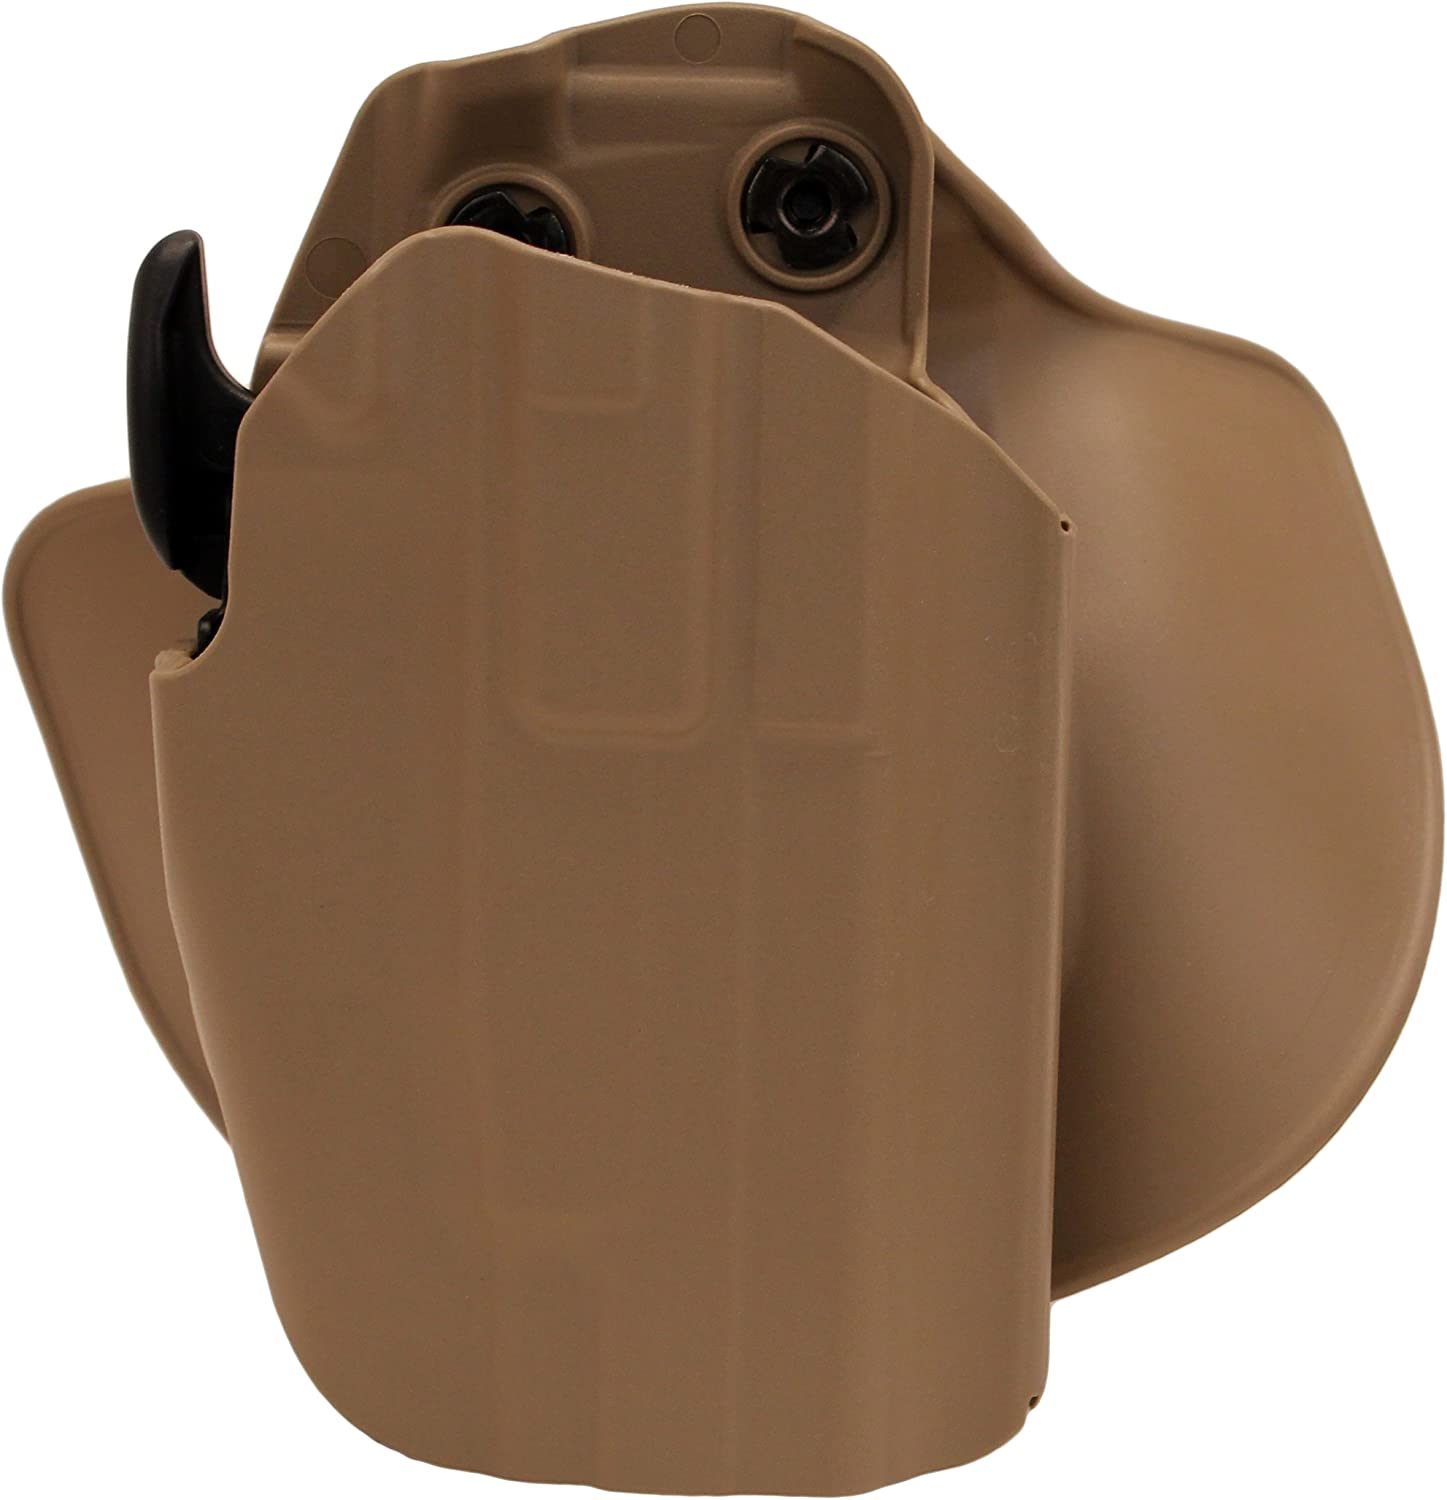 Safariland 578-283-551 Pro-Fit GLS Holster (Compact), Size 2, Flat Dark Earth, Right Hand